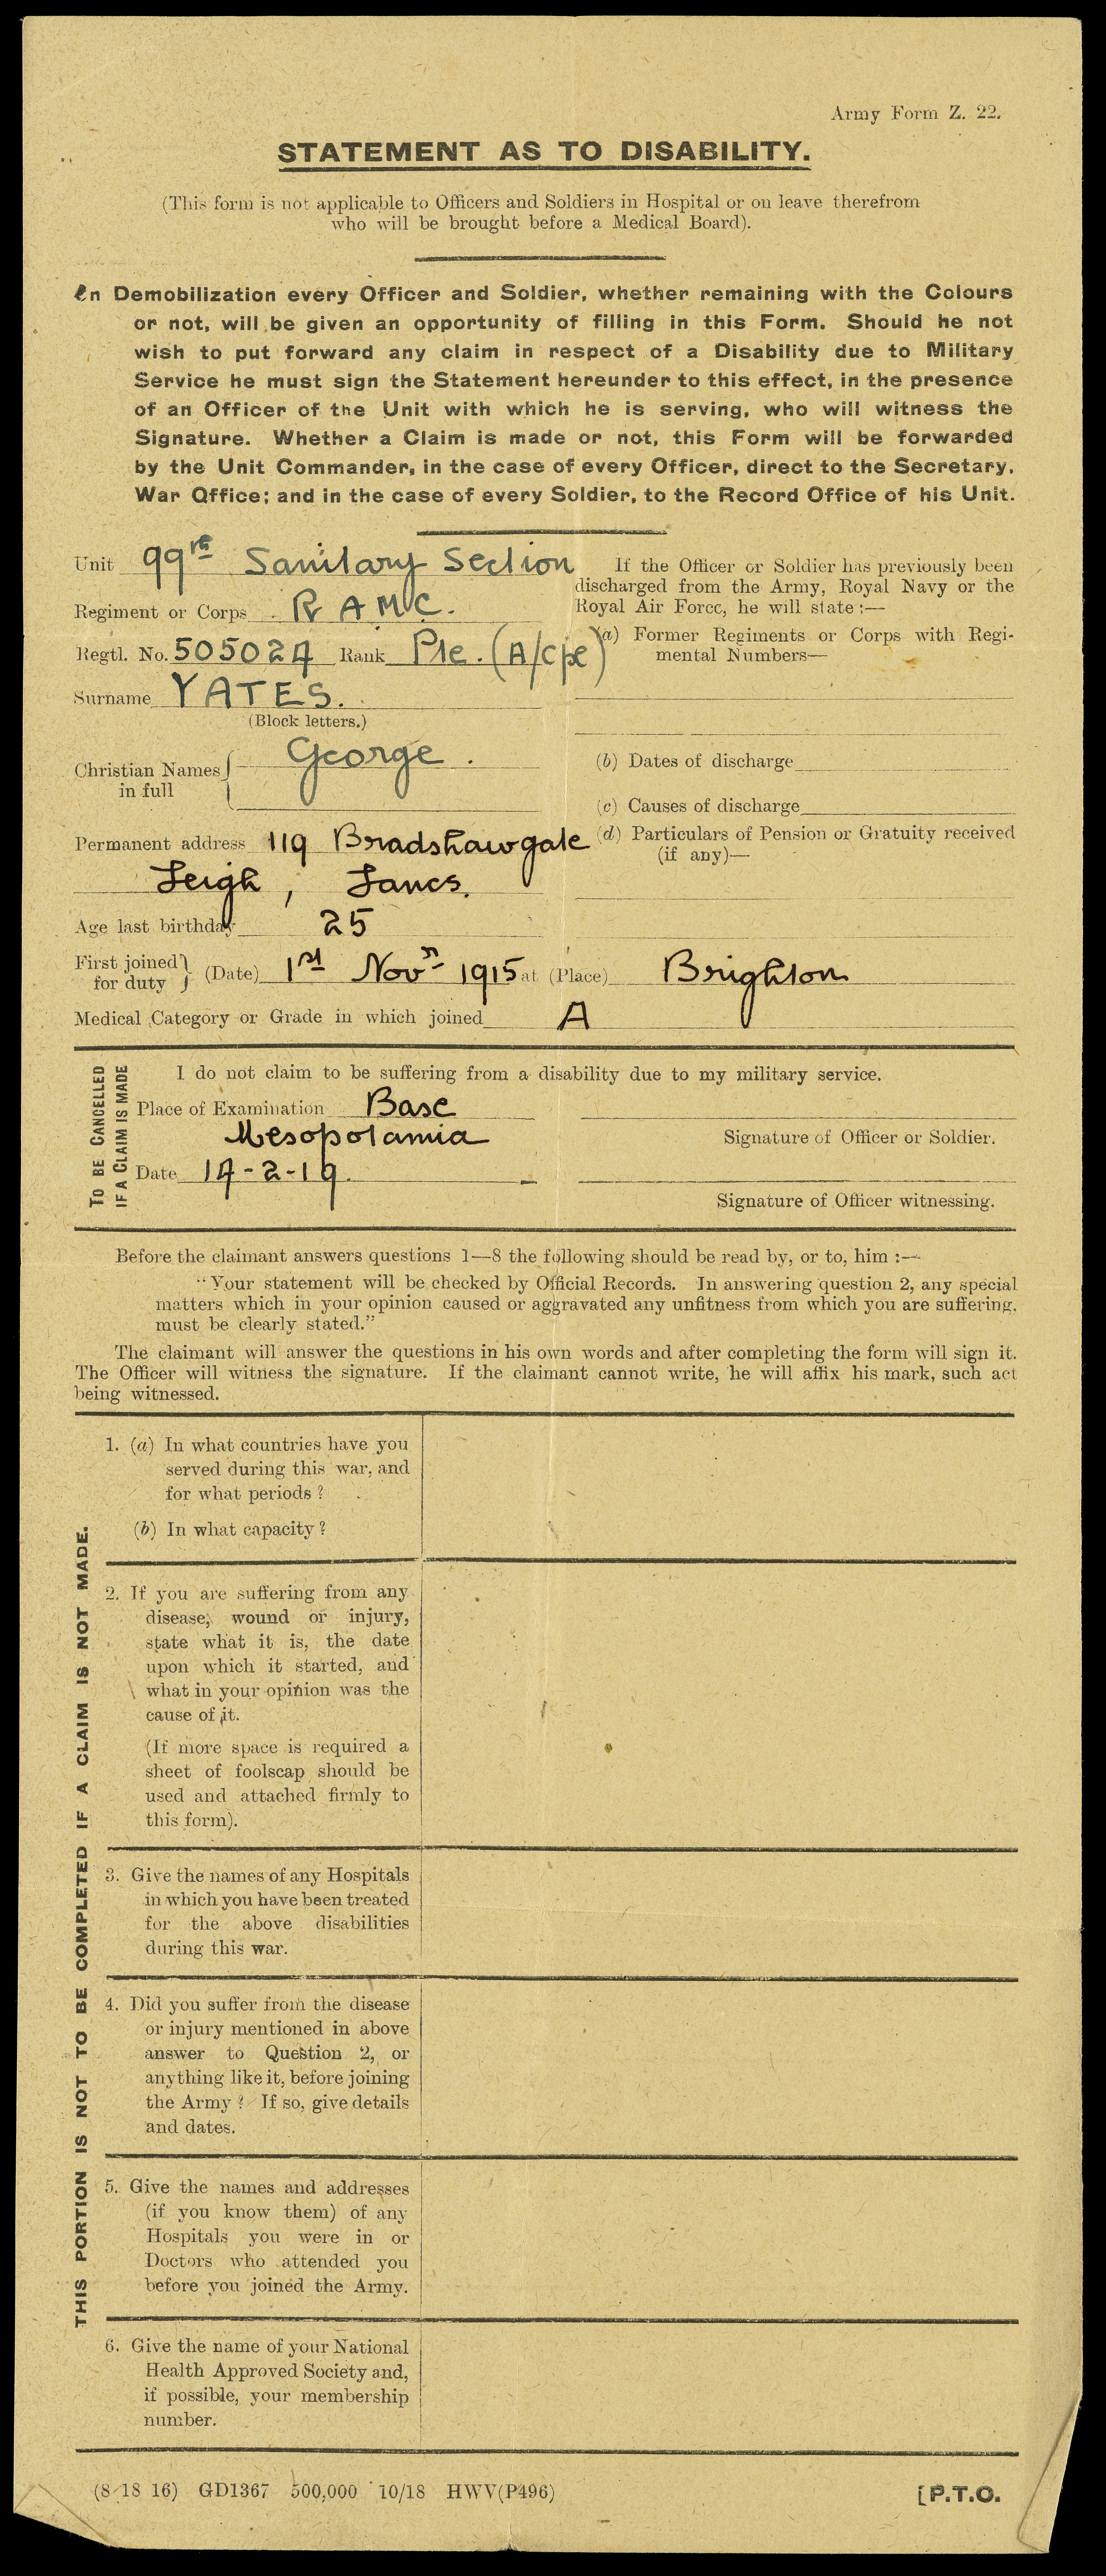 File:Statement as to disability on demobilization Wellcome